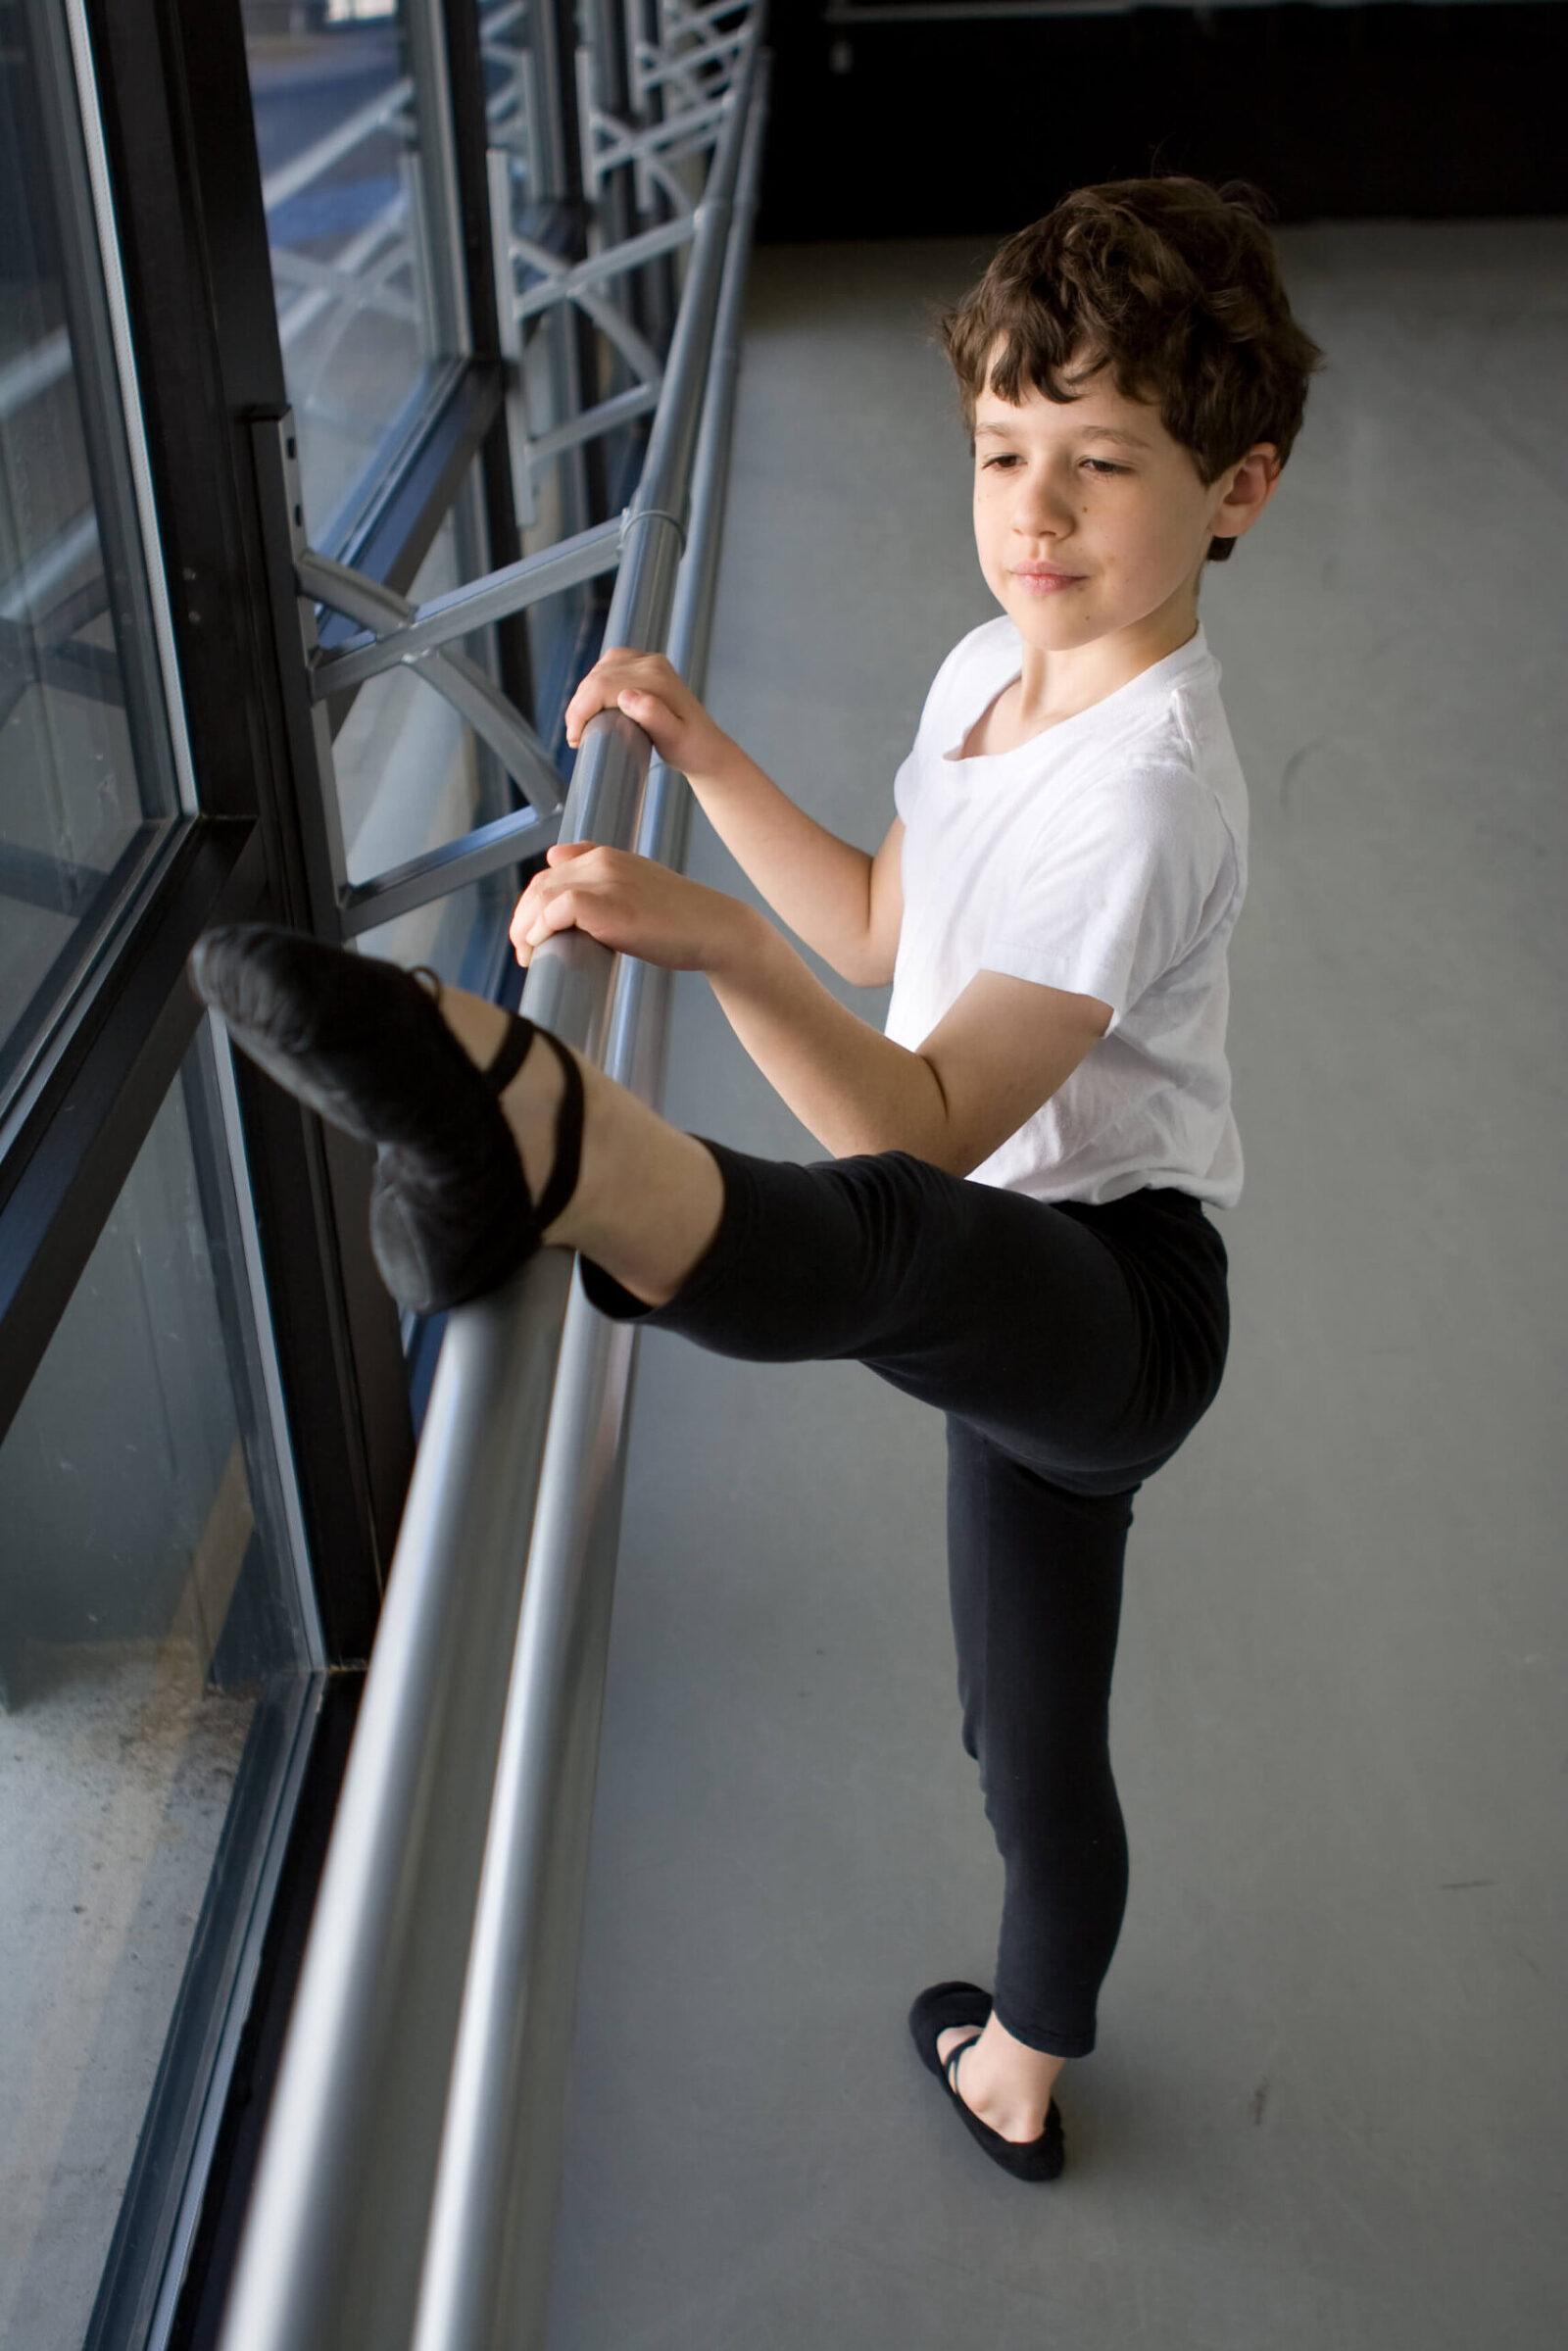 Dancer portrait by Tiffany Campbell Photography - young boy